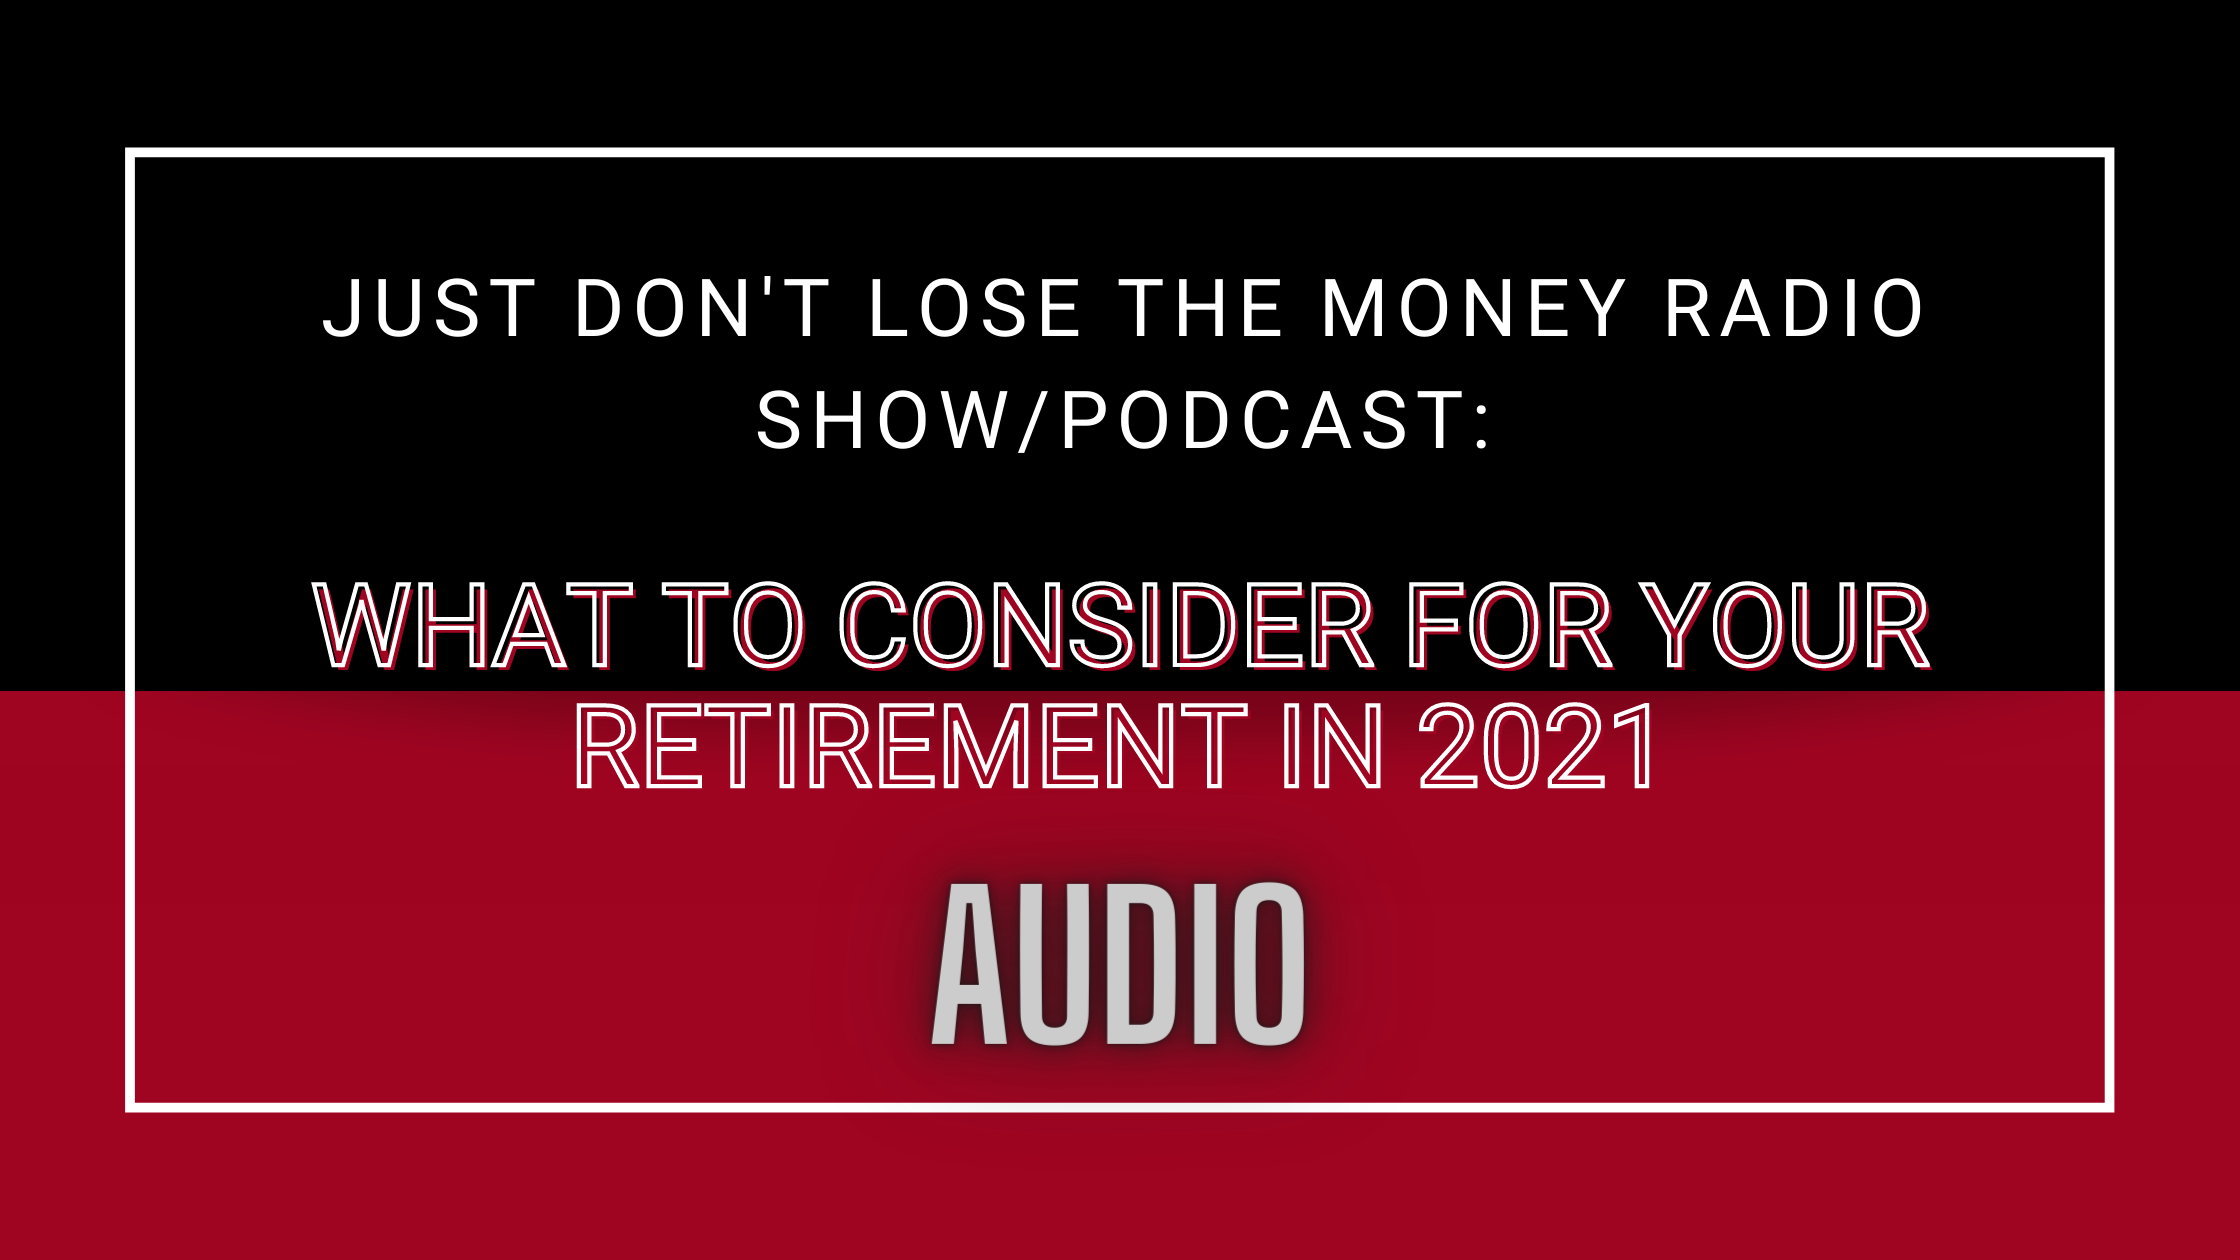 JDLTM: What To Consider For Your Retirement in 2021